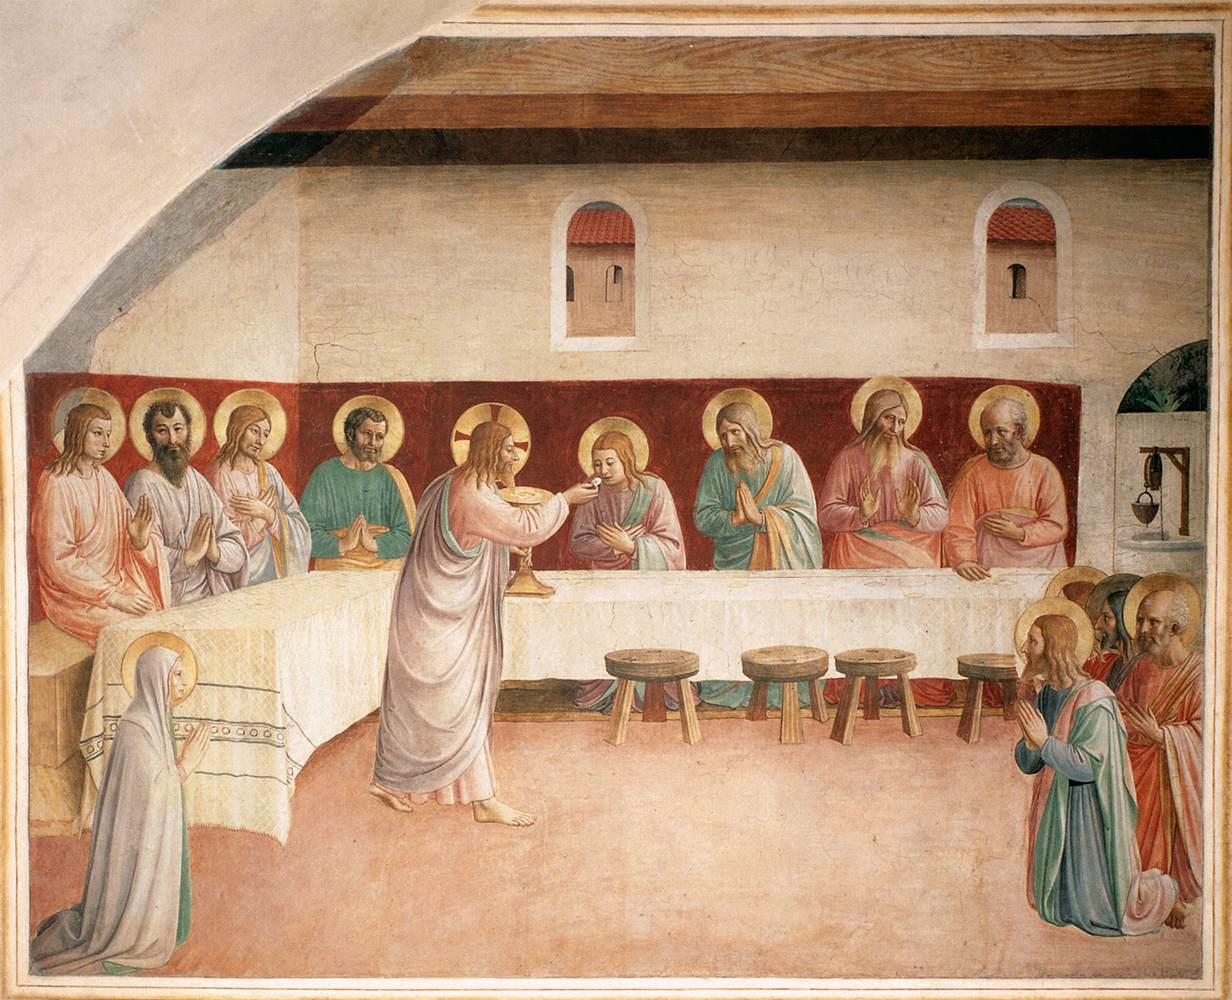 http://uploads7.wikipaintings.org/images/fra-angelico/institution-of-the-eucharist-1442.jpg